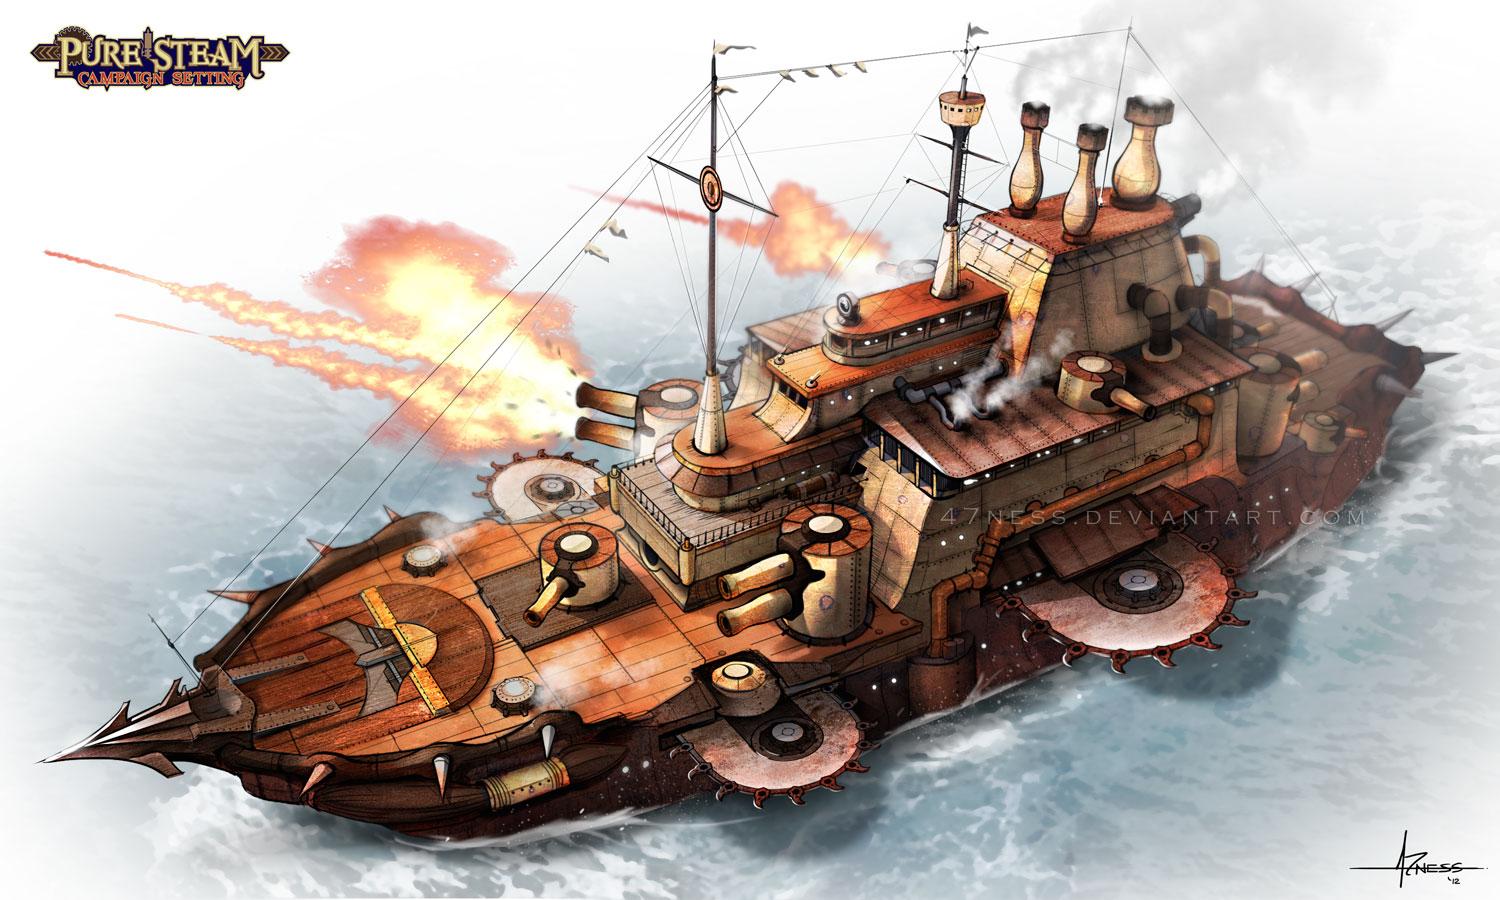 pure_steam___ironclad_maritime_warship_by_47ness-d5rv6vx